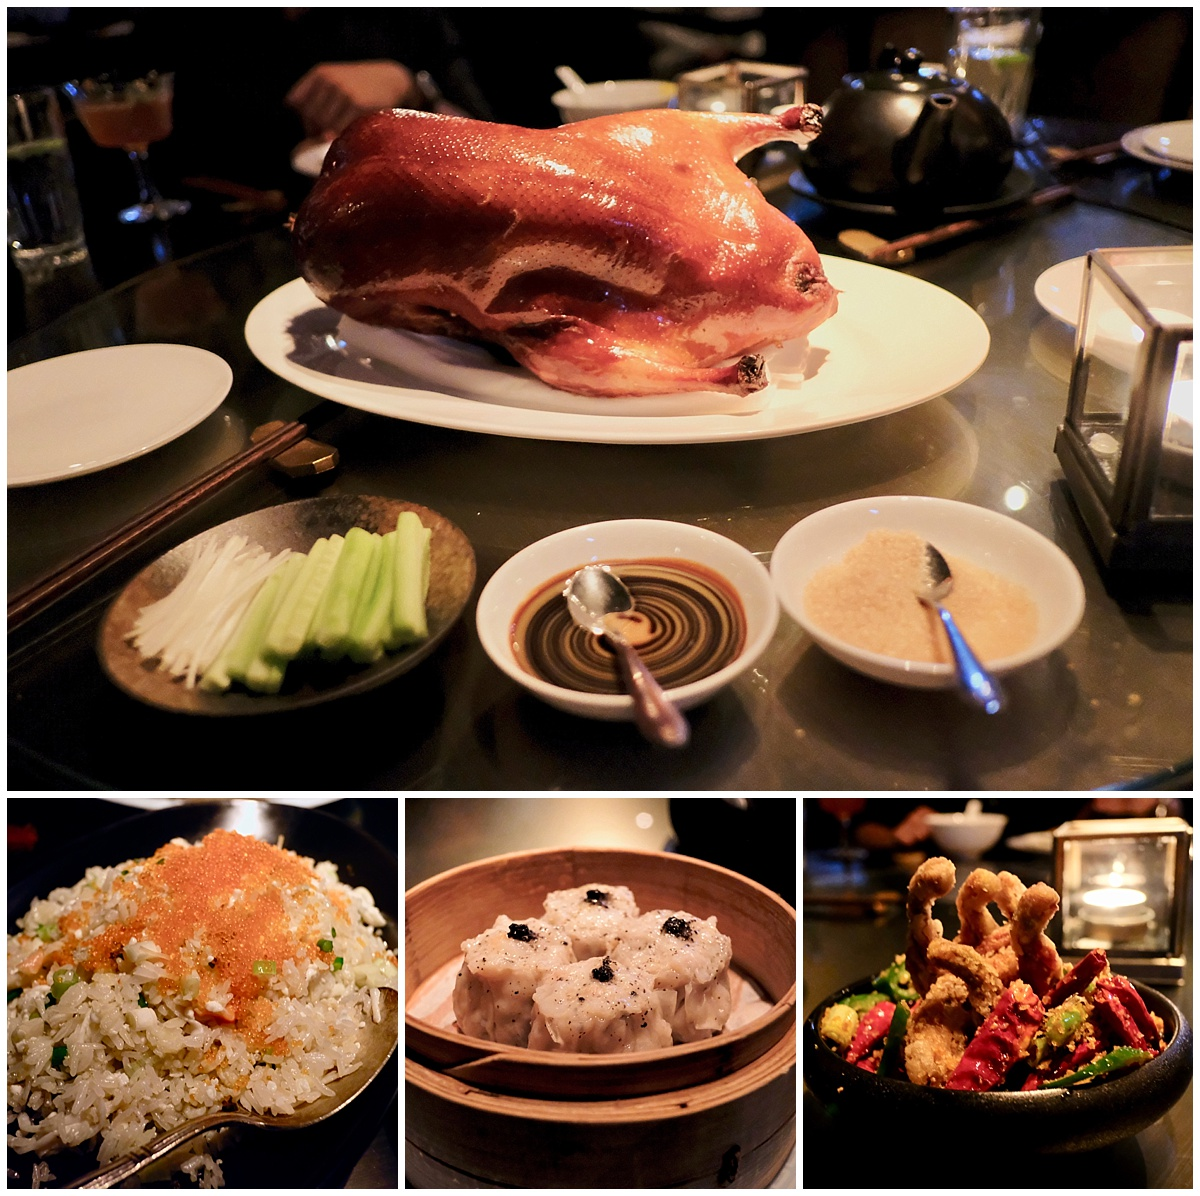 Mott 32 Peking duck HK